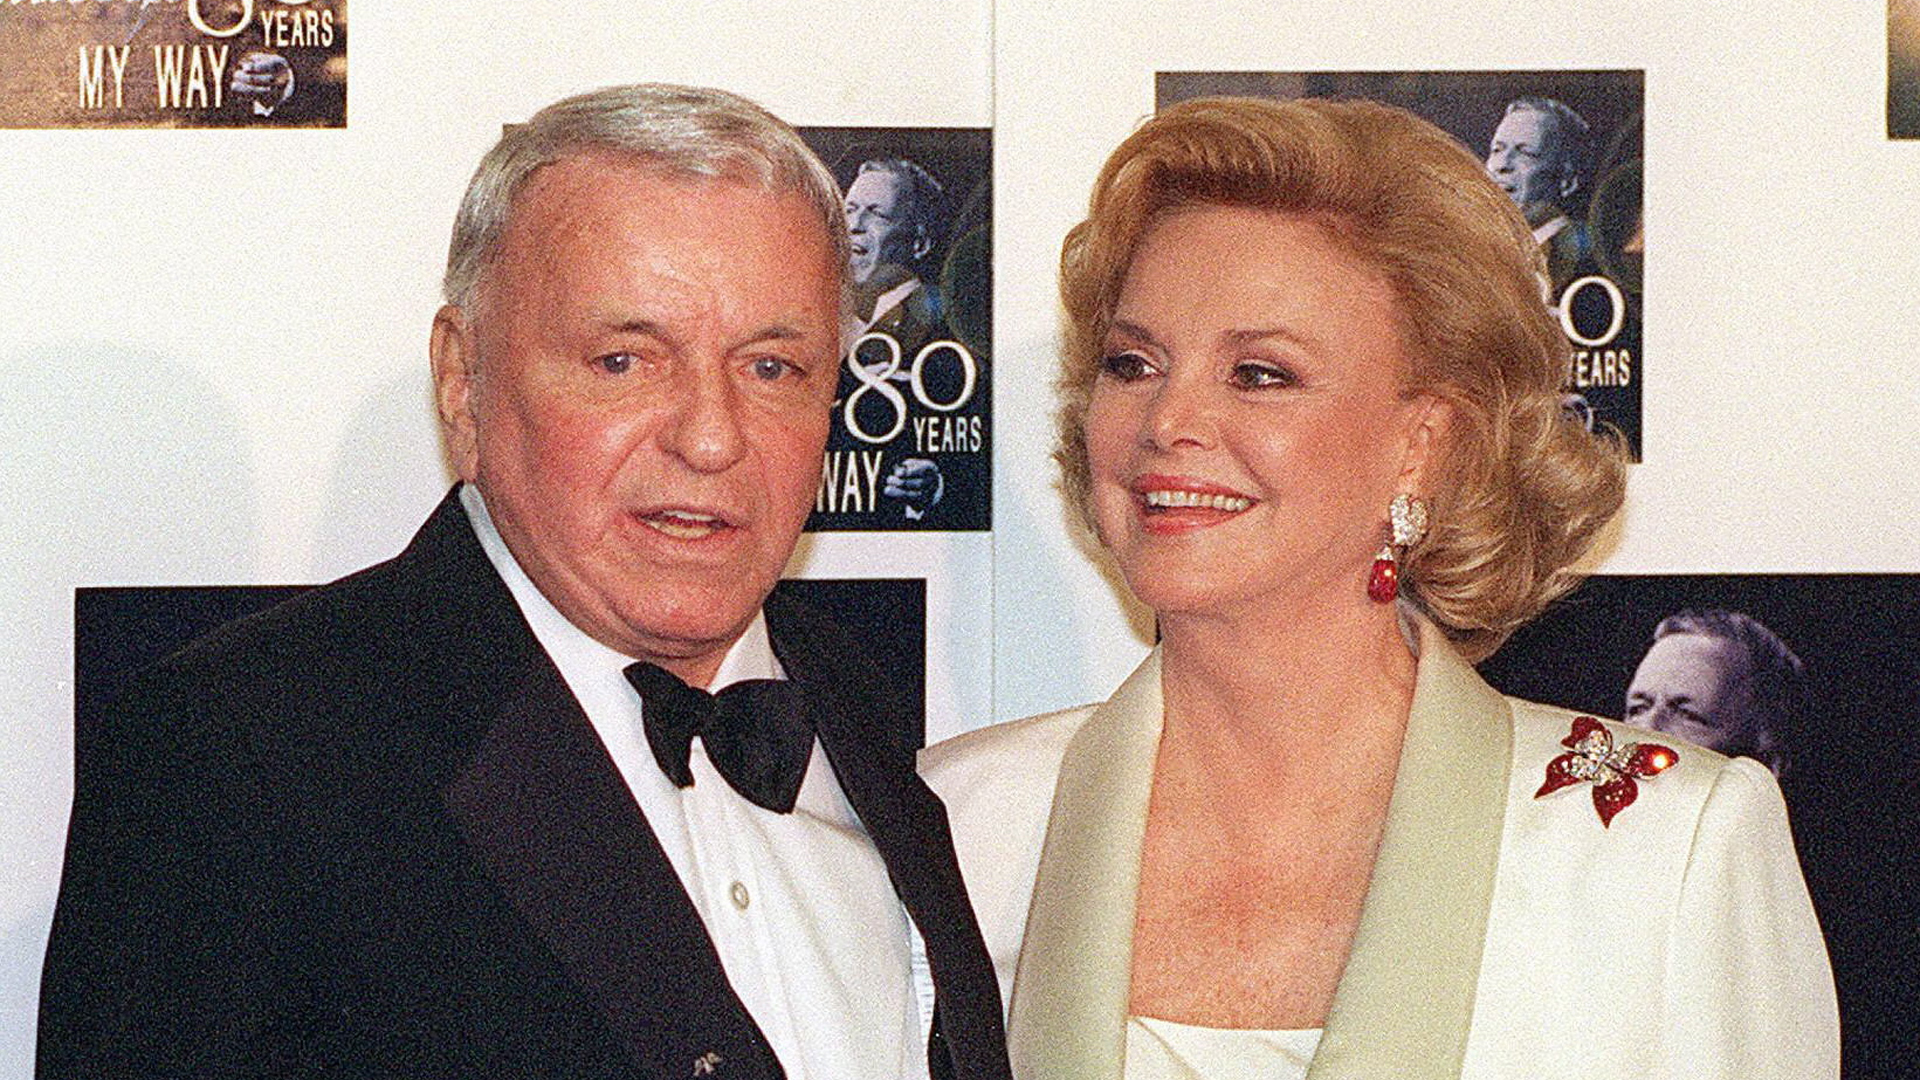 Barbara Sinatra in a photo with her husband Frank Sinatra after a star studded event to honor his 80th birthday at the Shrine Auditorium. (Credit: DAN GROSHONG/AFP/Getty Images)